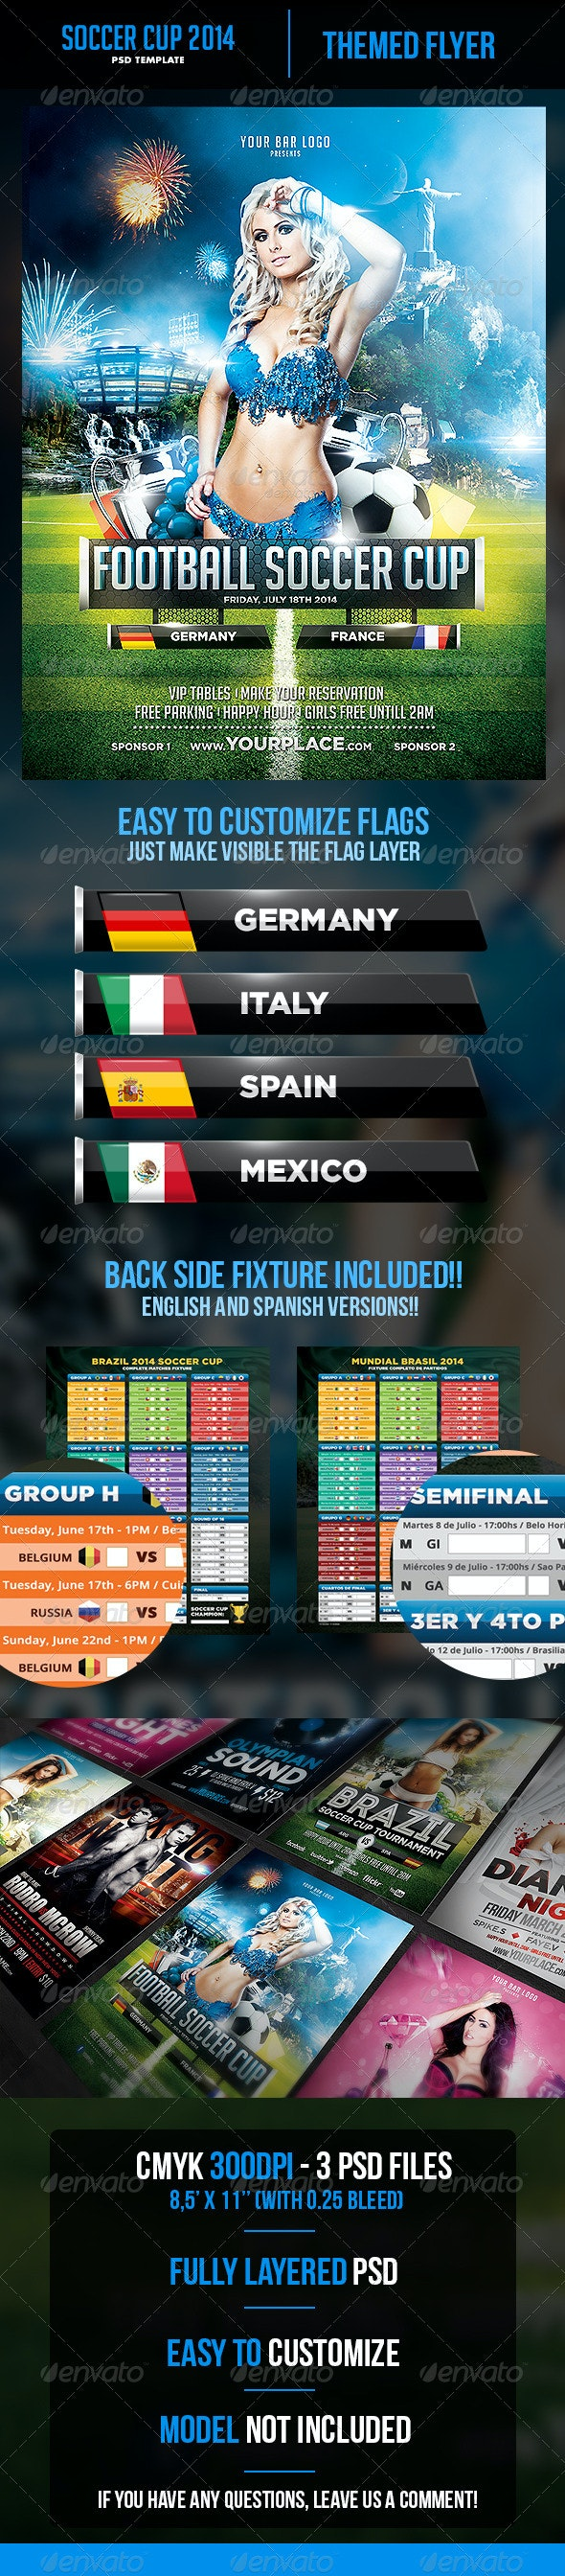 Soccer Cup 2014 Flyer with Fixture - Eng, Spa - Sports Events